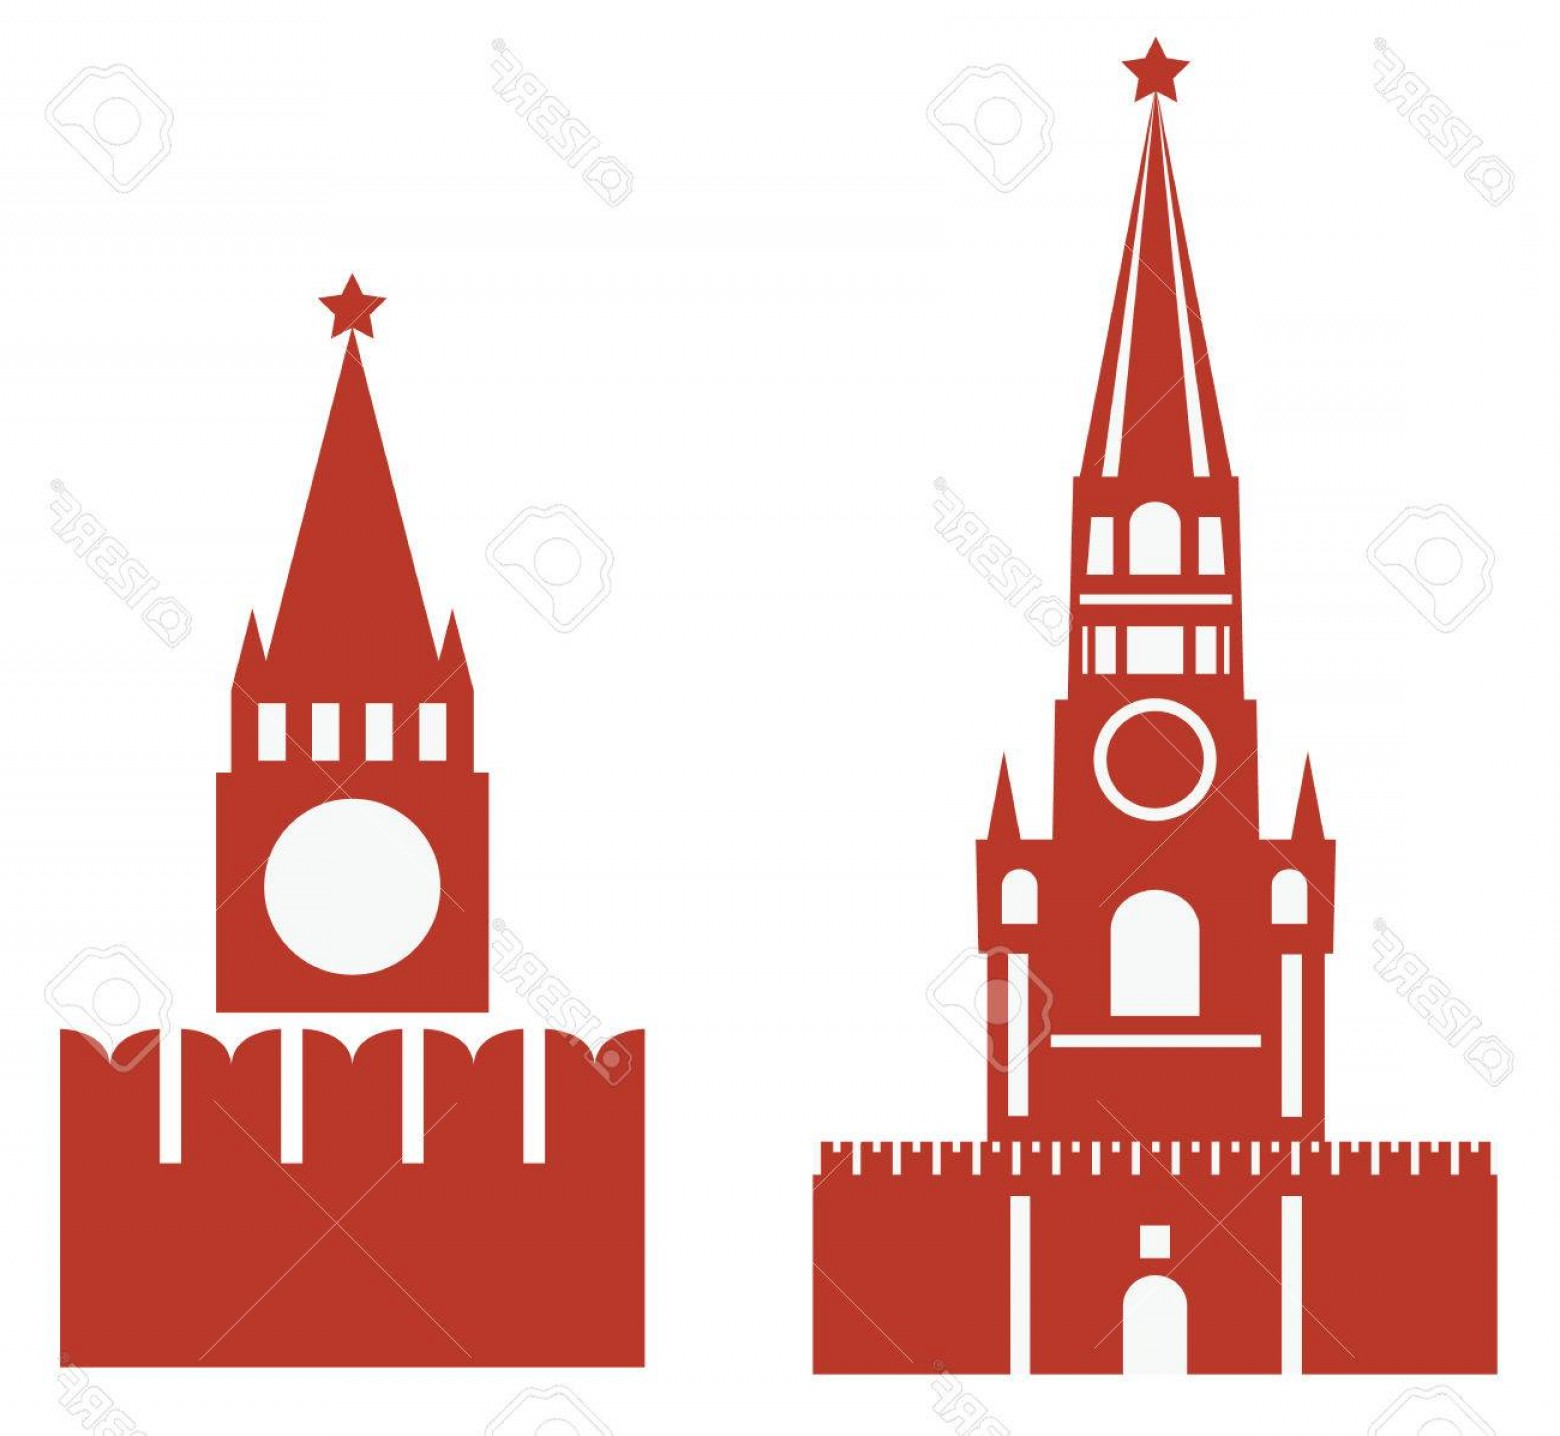 Kaya Vector: Photovector Illustration Of Two Variations Of Spasskaya Tower And Req Square